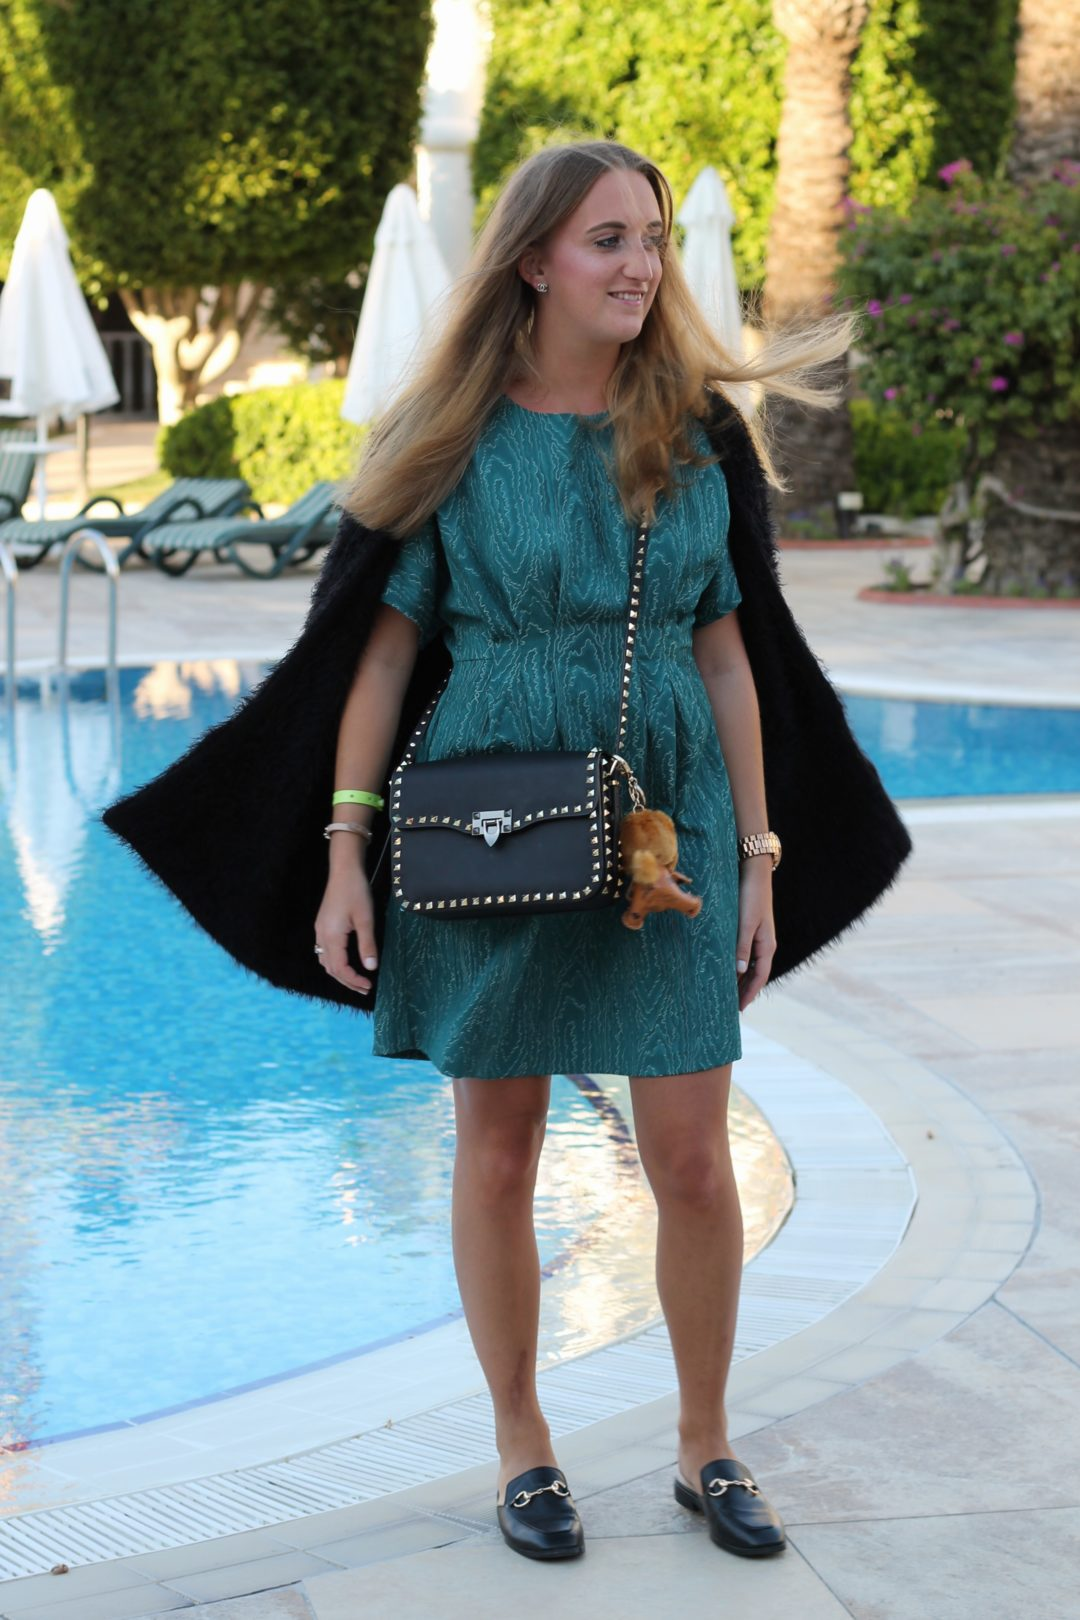 Green dress and Valentino bag - I got the green dress for years now and I love wearing it together with my slippers. Additionally, I combined my Valentino bag...@wiebkembg